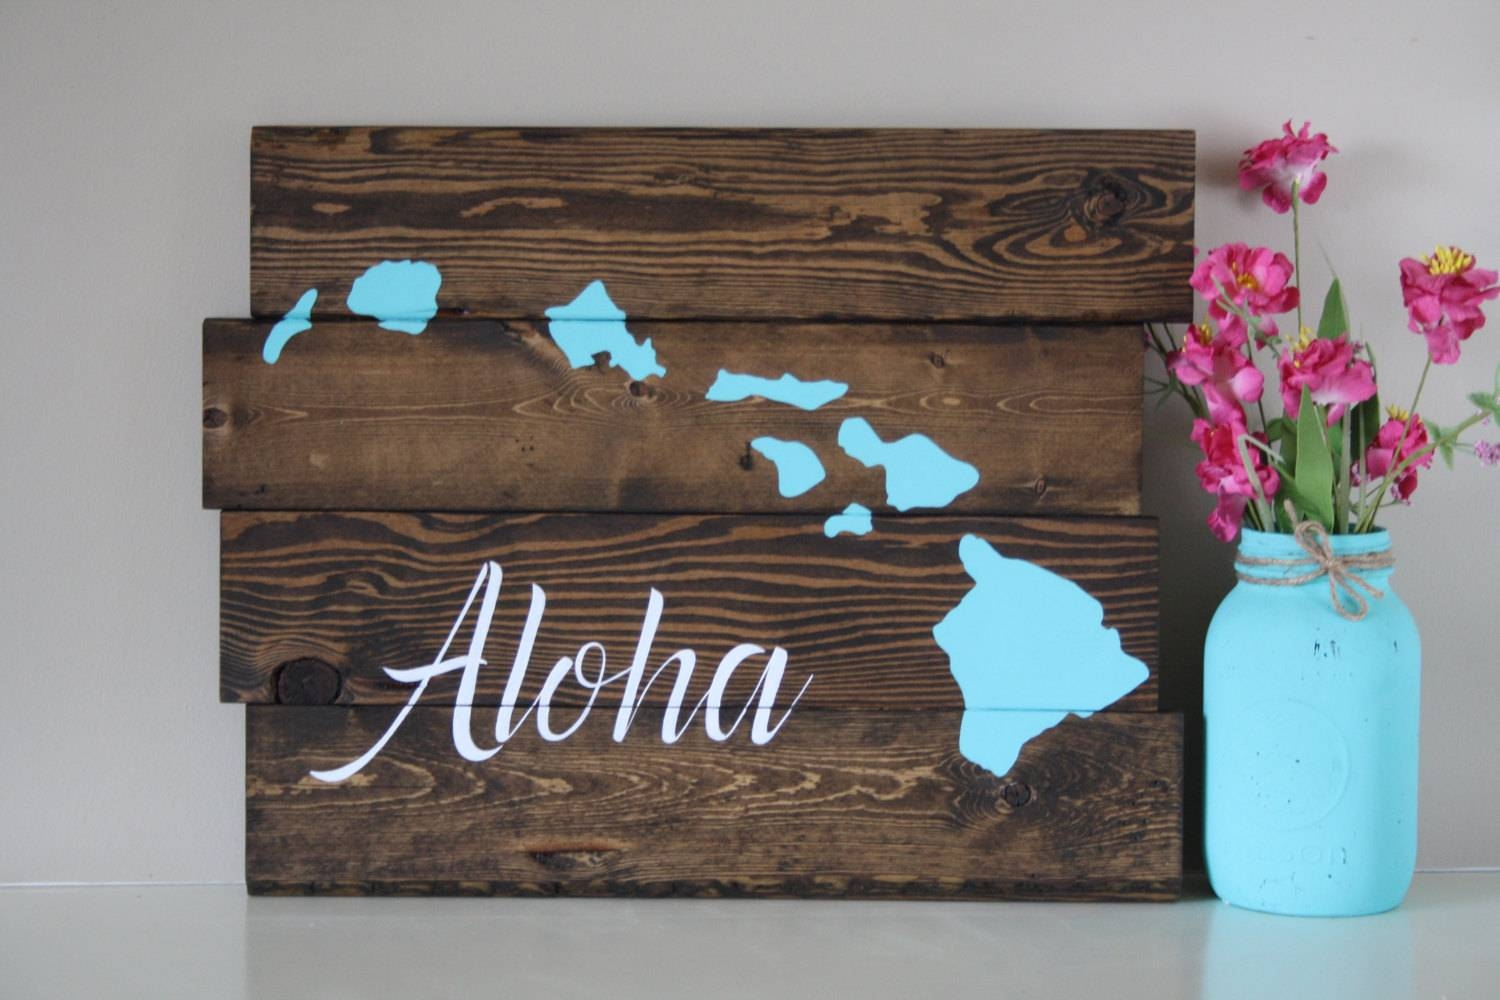 Reclaimed Wood Wall Art Aloha Hawaiian Island Reclaimed Inside Latest Hawaiian Islands Wall Art (View 25 of 25)